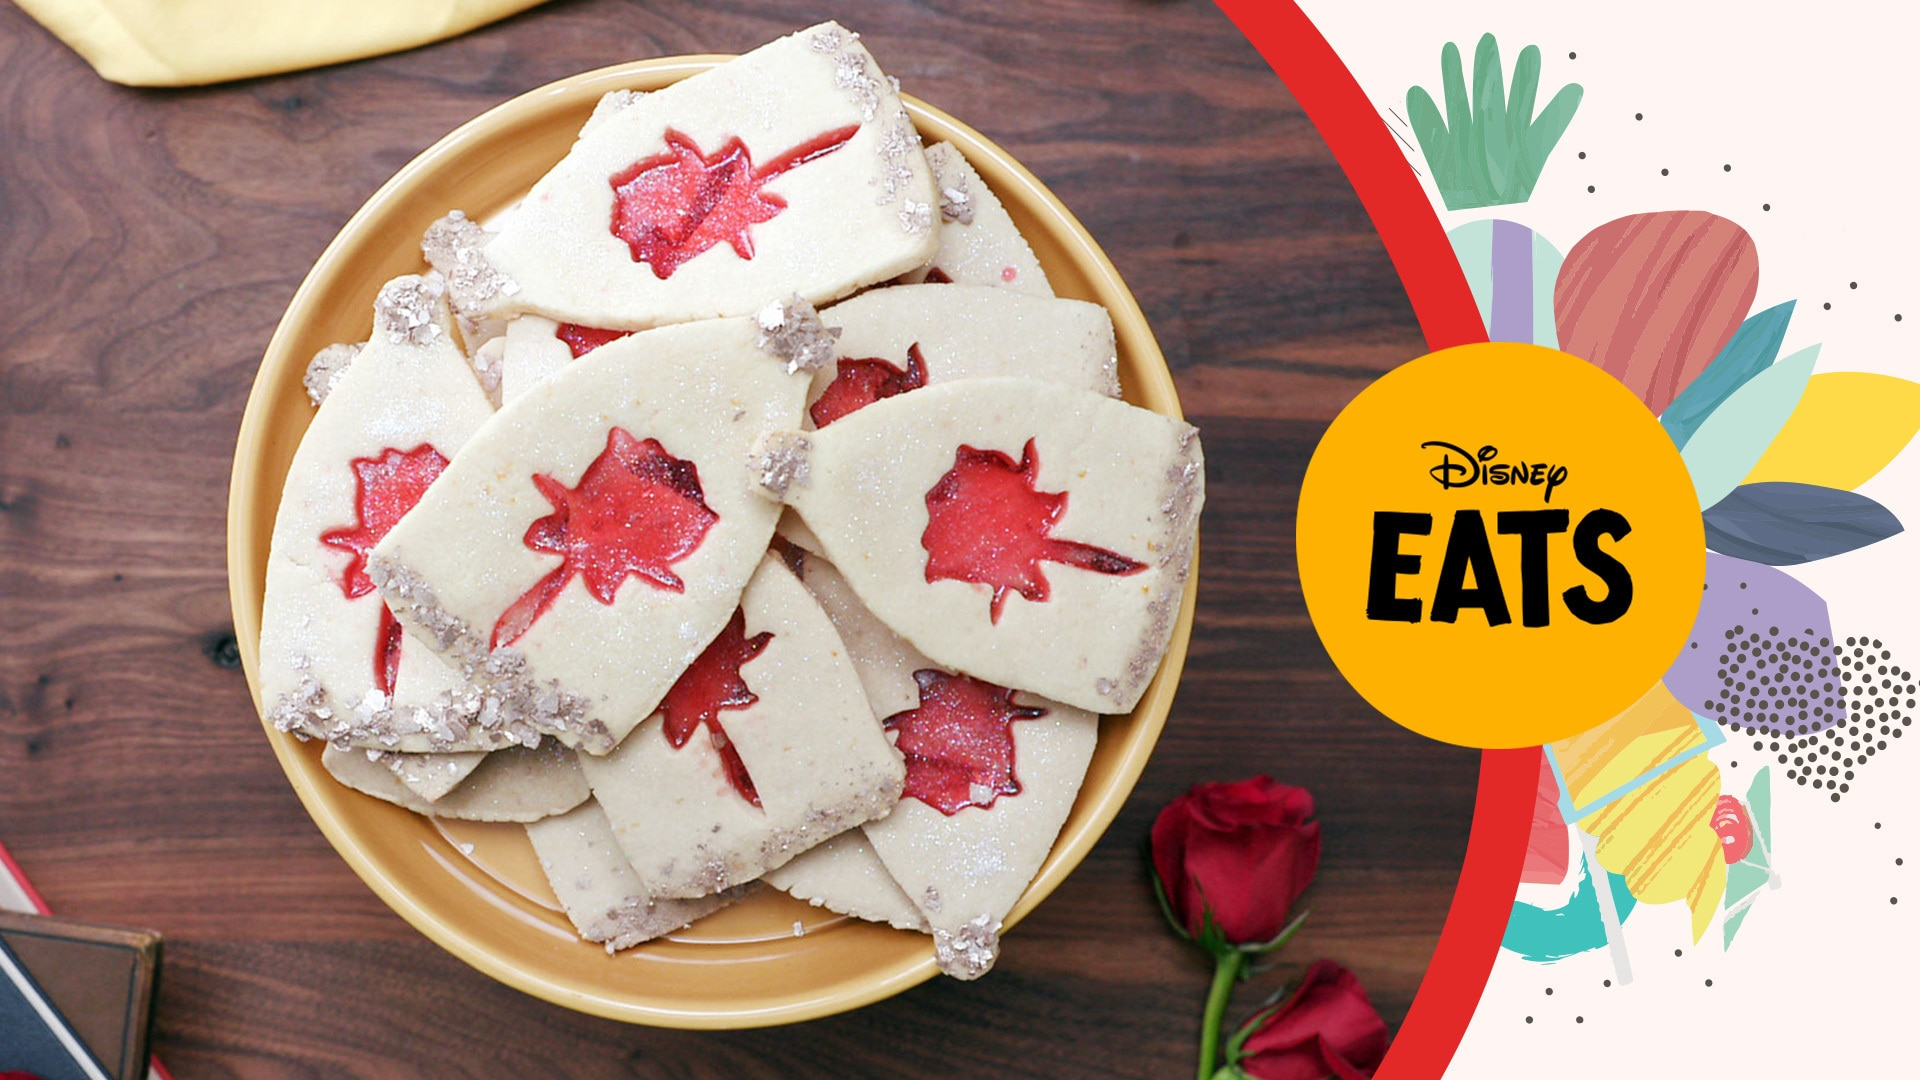 Enchanted Rose Stained Glass Cookies | Disney Eats x Tastemade